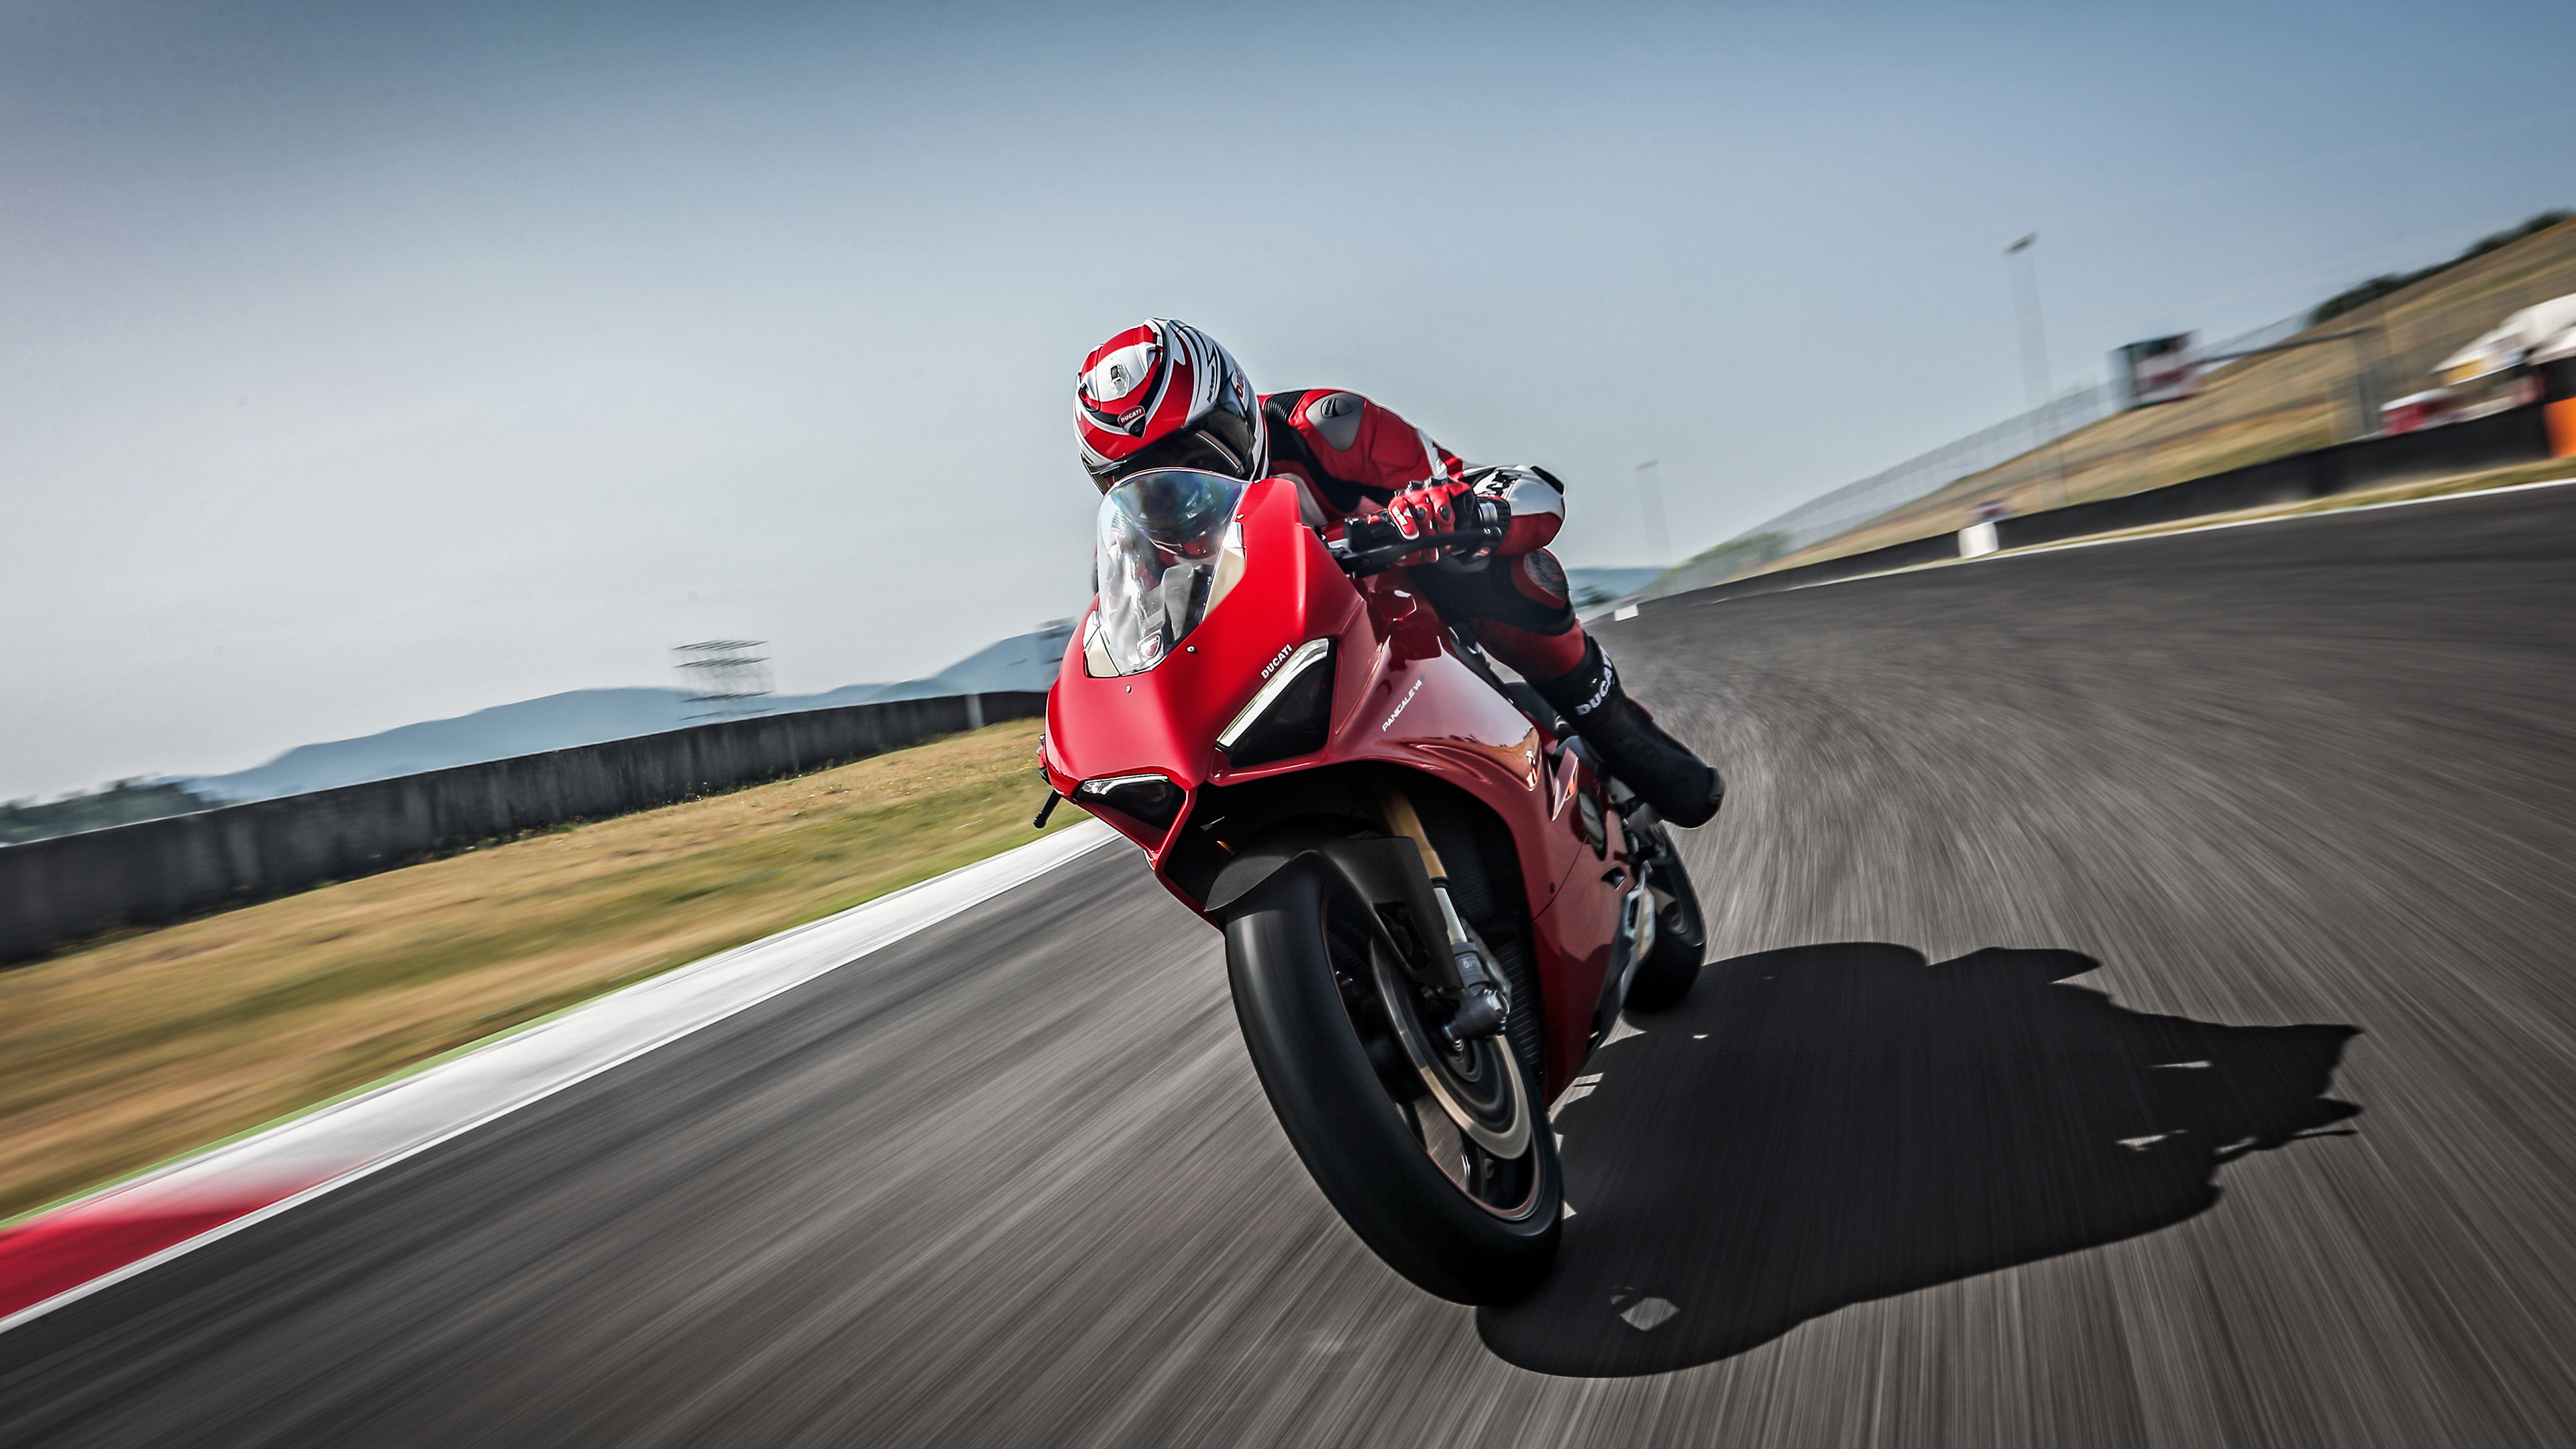 ducati panigale v4 s 2018 racing 1536316345 - Ducati Panigale V4 S 2018 Racing - hd-wallpapers, ducati wallpapers, ducati panigale wallpapers, bikes wallpapers, 4k-wallpapers, 2018 bikes wallpapers